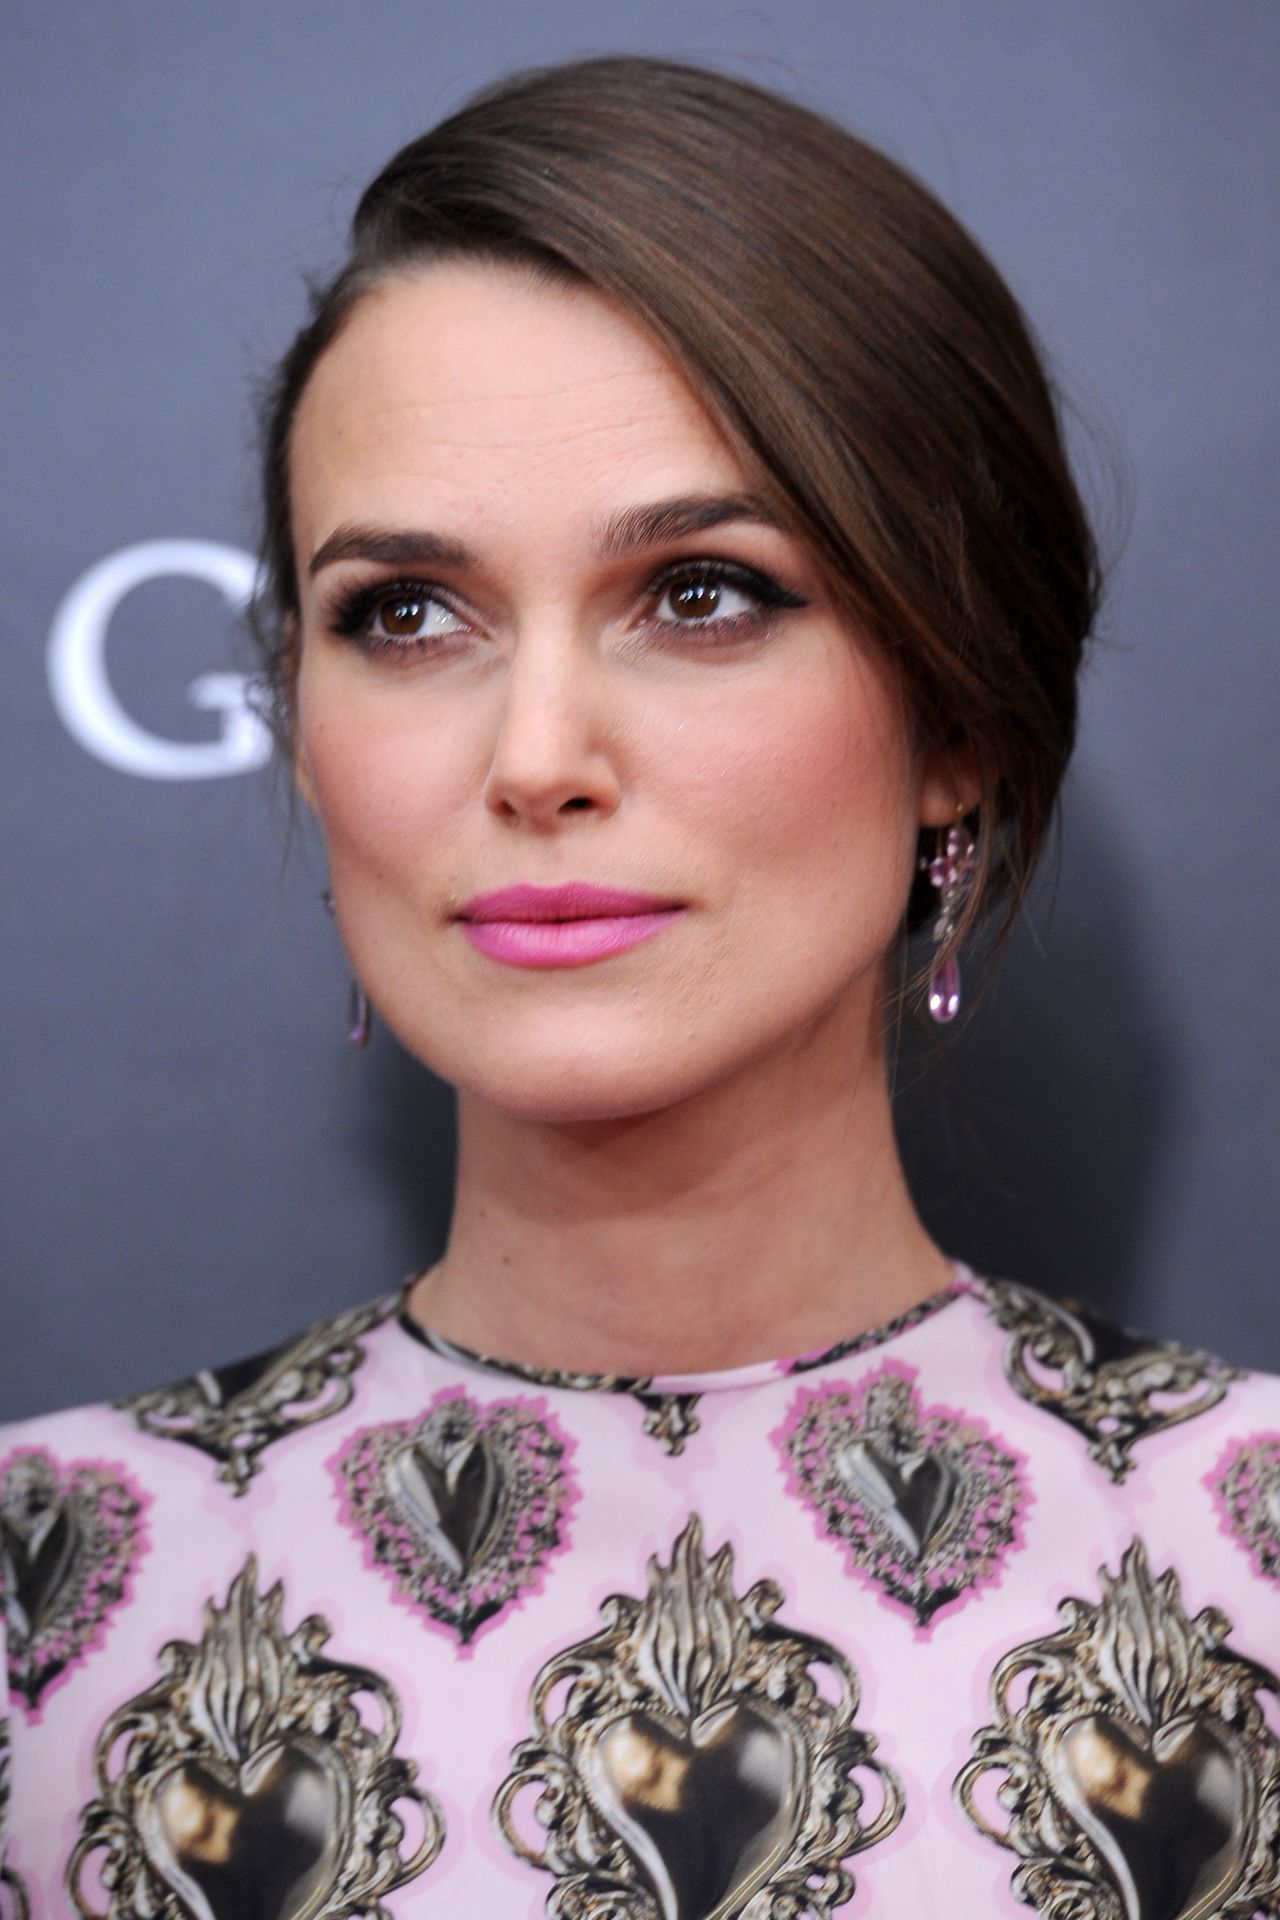 Keira Knightley The Imitation Game Premiere In New